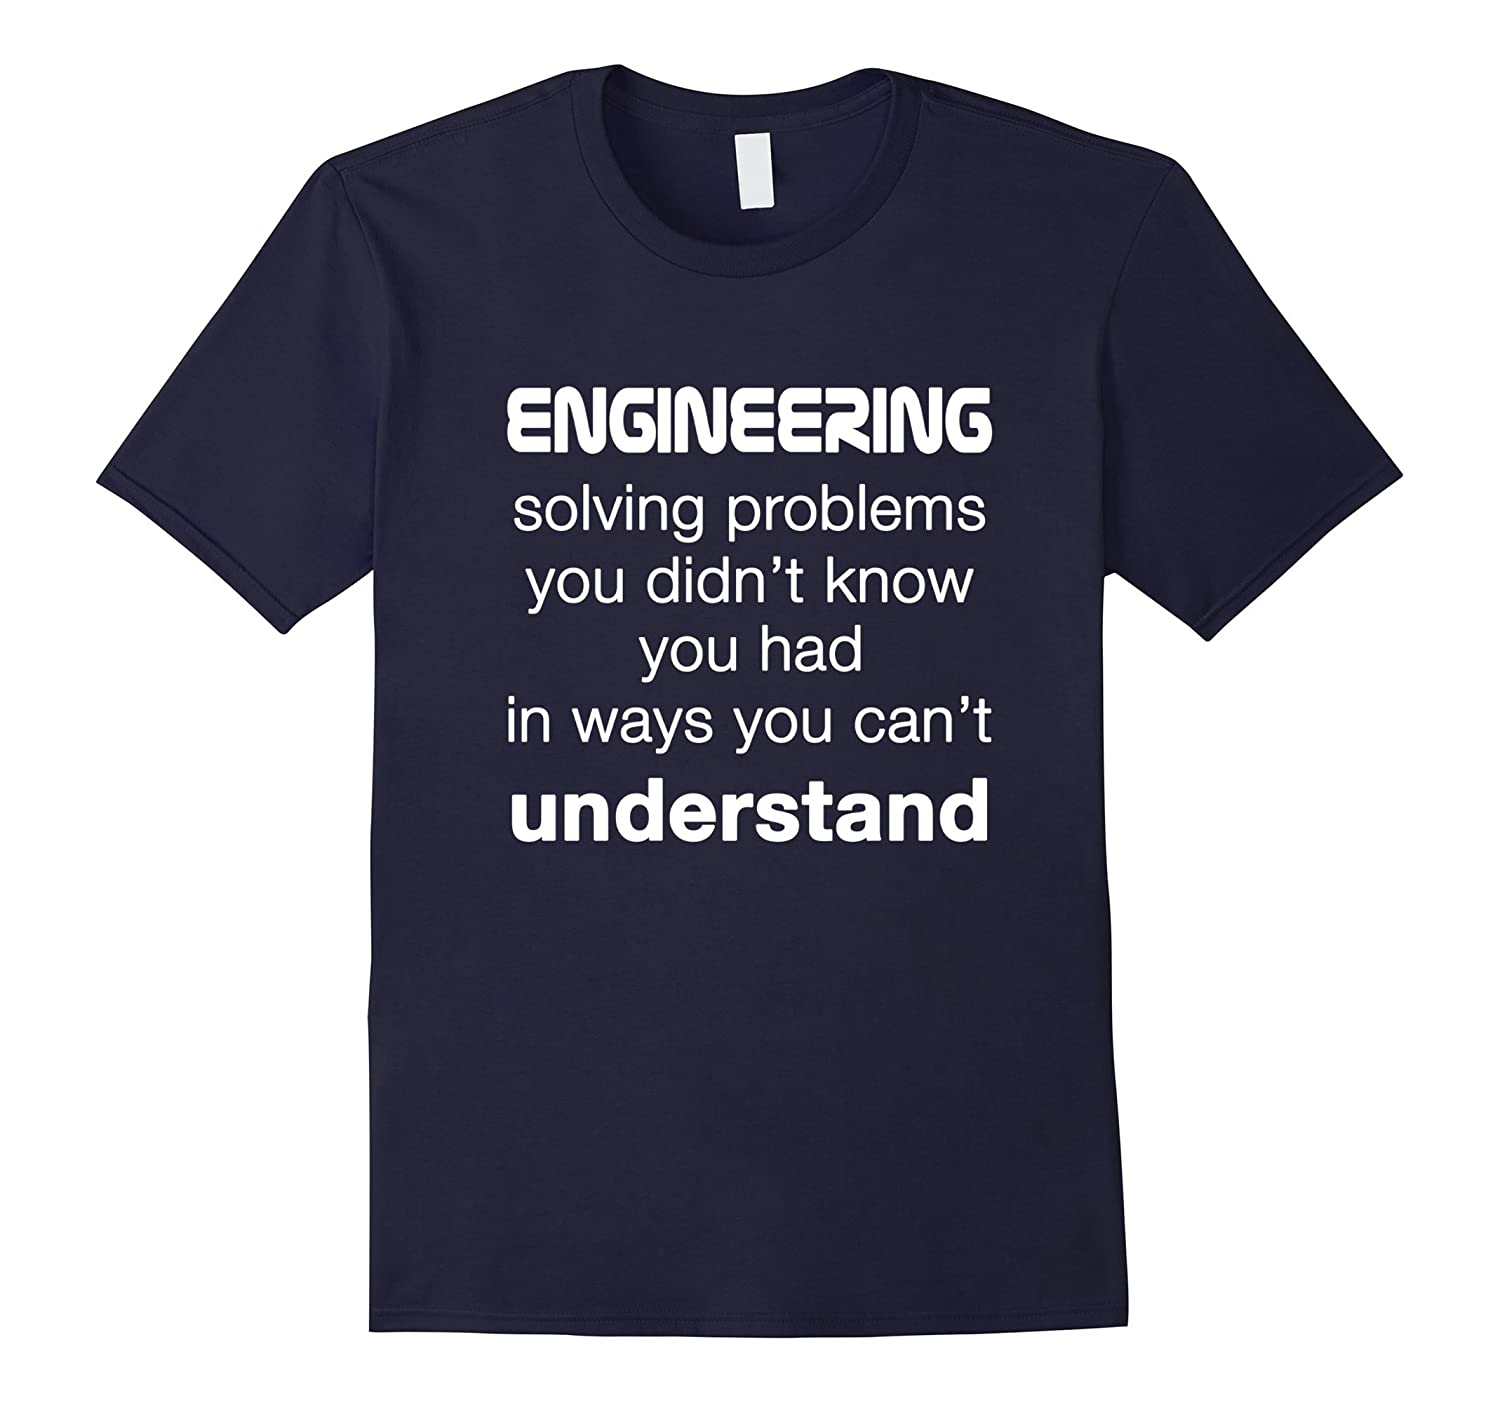 Cool Engineer  Engineering T-shirt About Solving Problems-TD